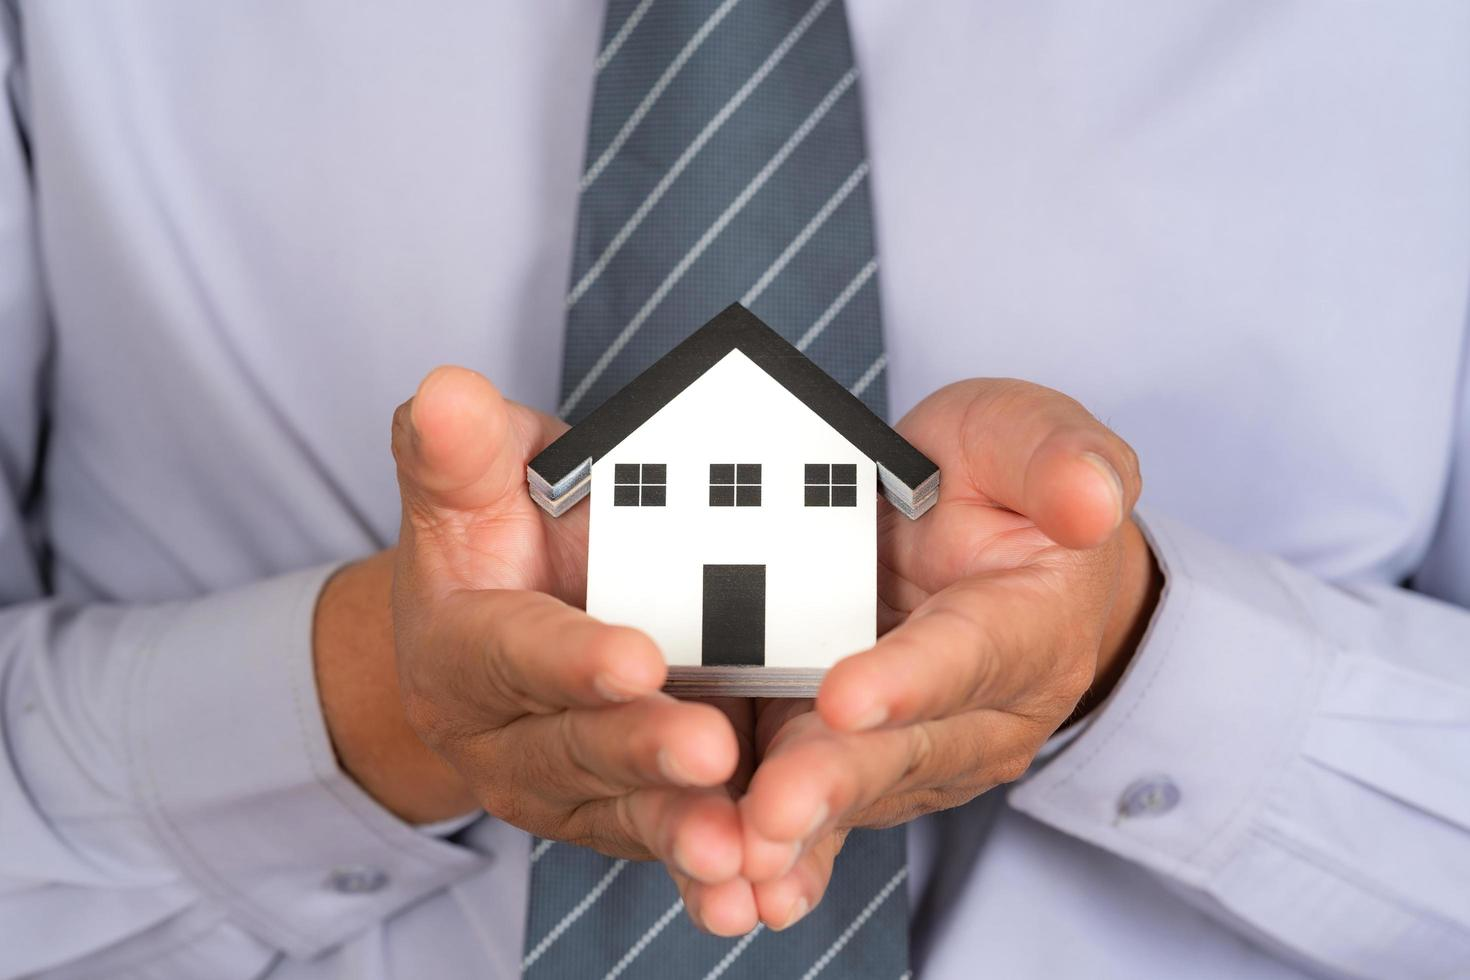 Insurance house concept House model on support hands Protection house safe protect 2509851 Stock Photo at Vecteezy